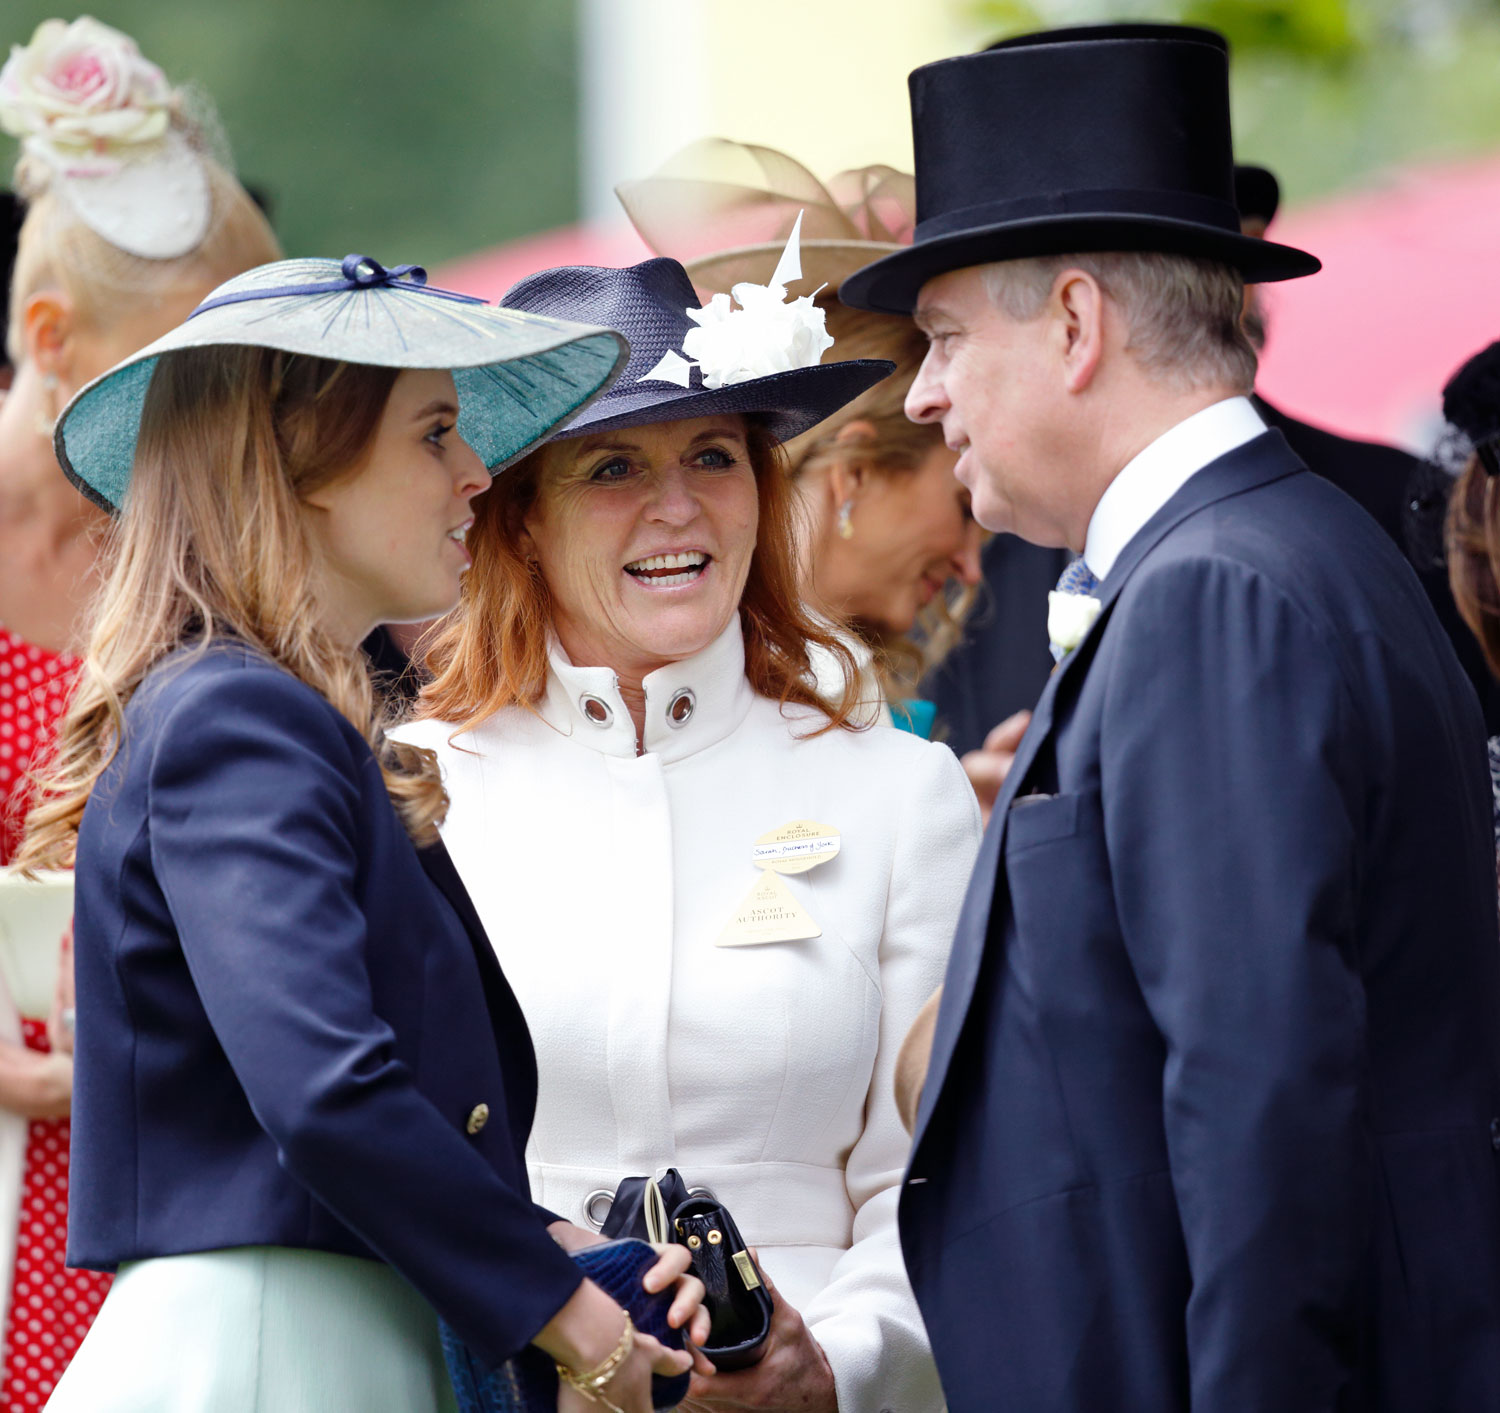 ASCOT, UNITED KINGDOM - JUNE 17: (EMBARGOED FOR PUBLICATION IN UK NEWSPAPERS UNTIL 48 HOURS AFTER CREATE DATE AND TIME) Princess Beatrice, Sarah Ferguson, Duchess of York and Prince Andrew, Duke of York attend day 4 of Royal Ascot at Ascot Racecourse on June 17, 2016 in Ascot, England. (Photo by Max Mumby/Indigo/Getty Images)